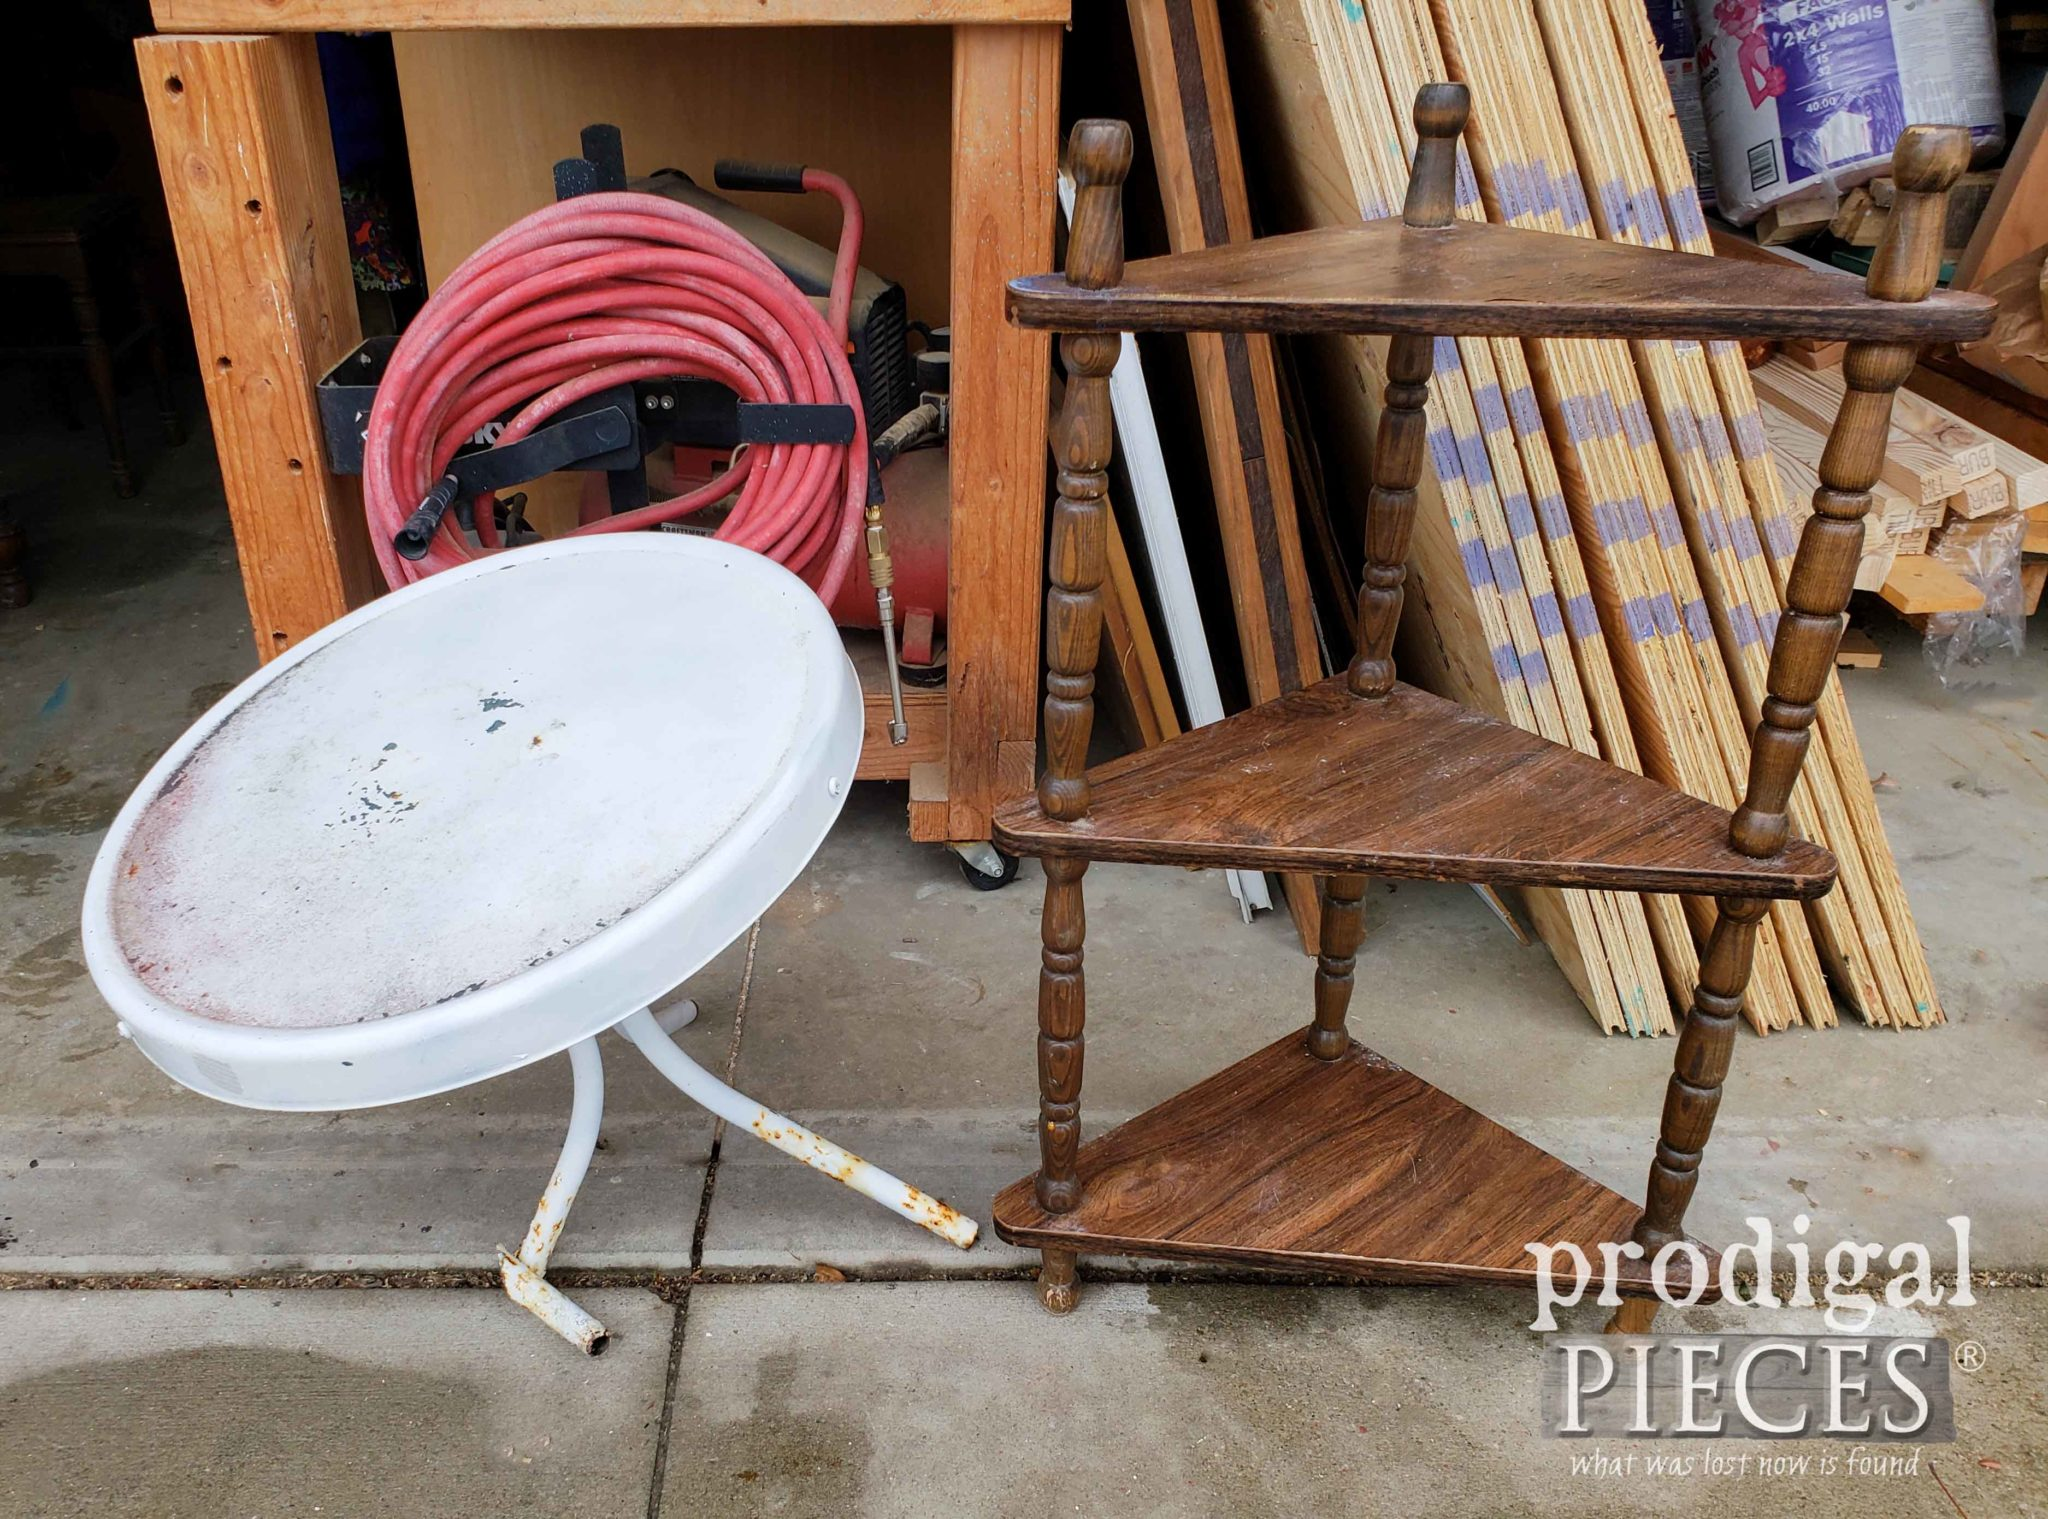 Two Tables Found in the Trash | prodigalpieces.com